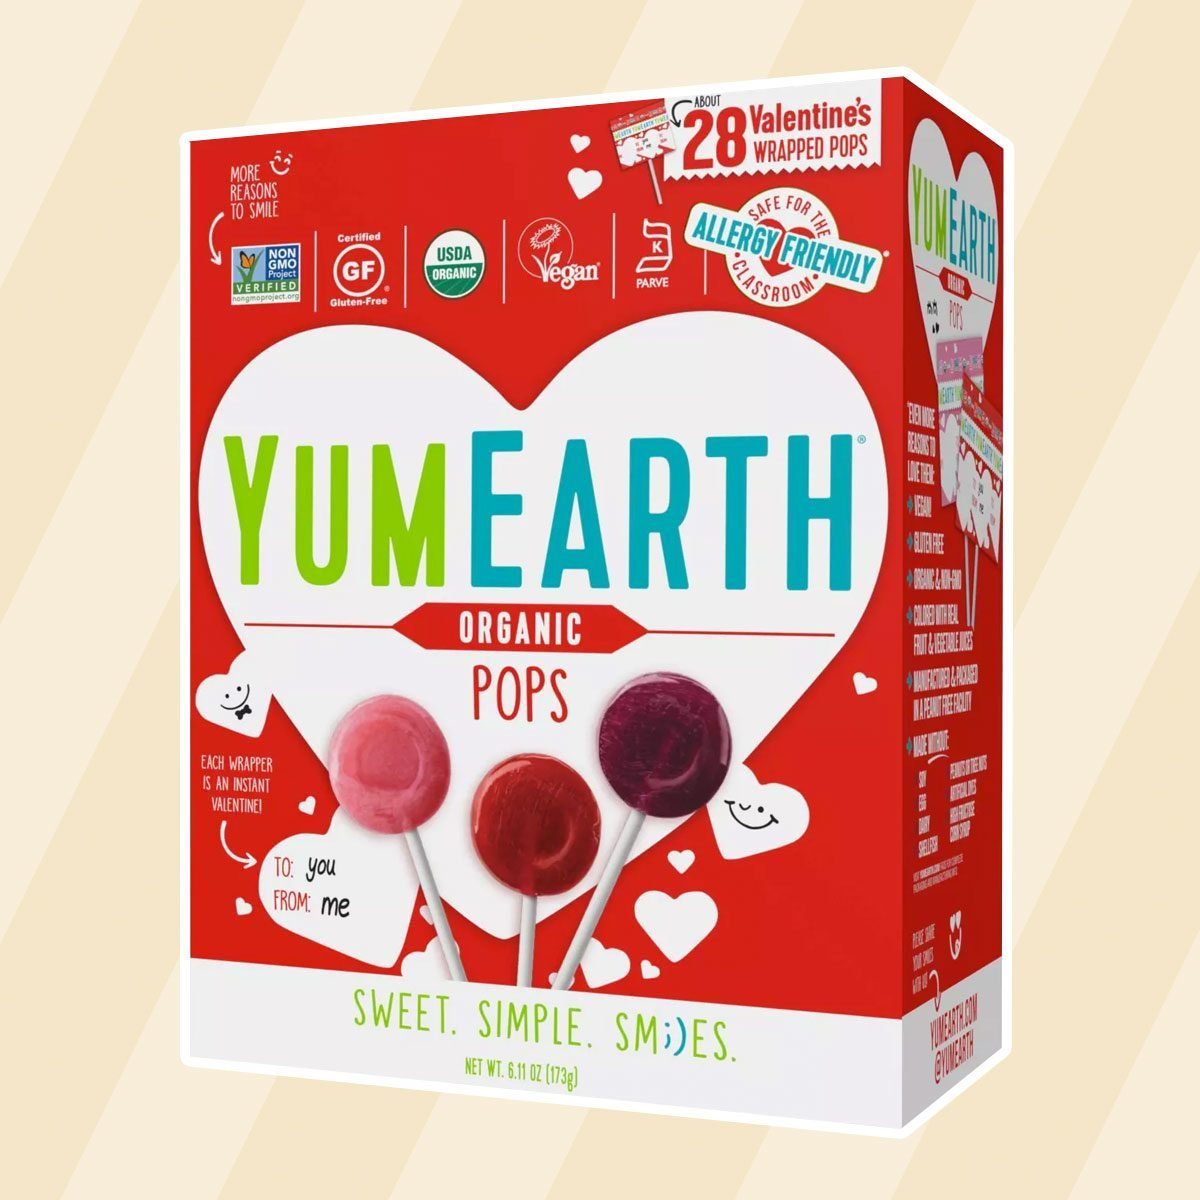 edible valentine's gifts Yum Earth Pops